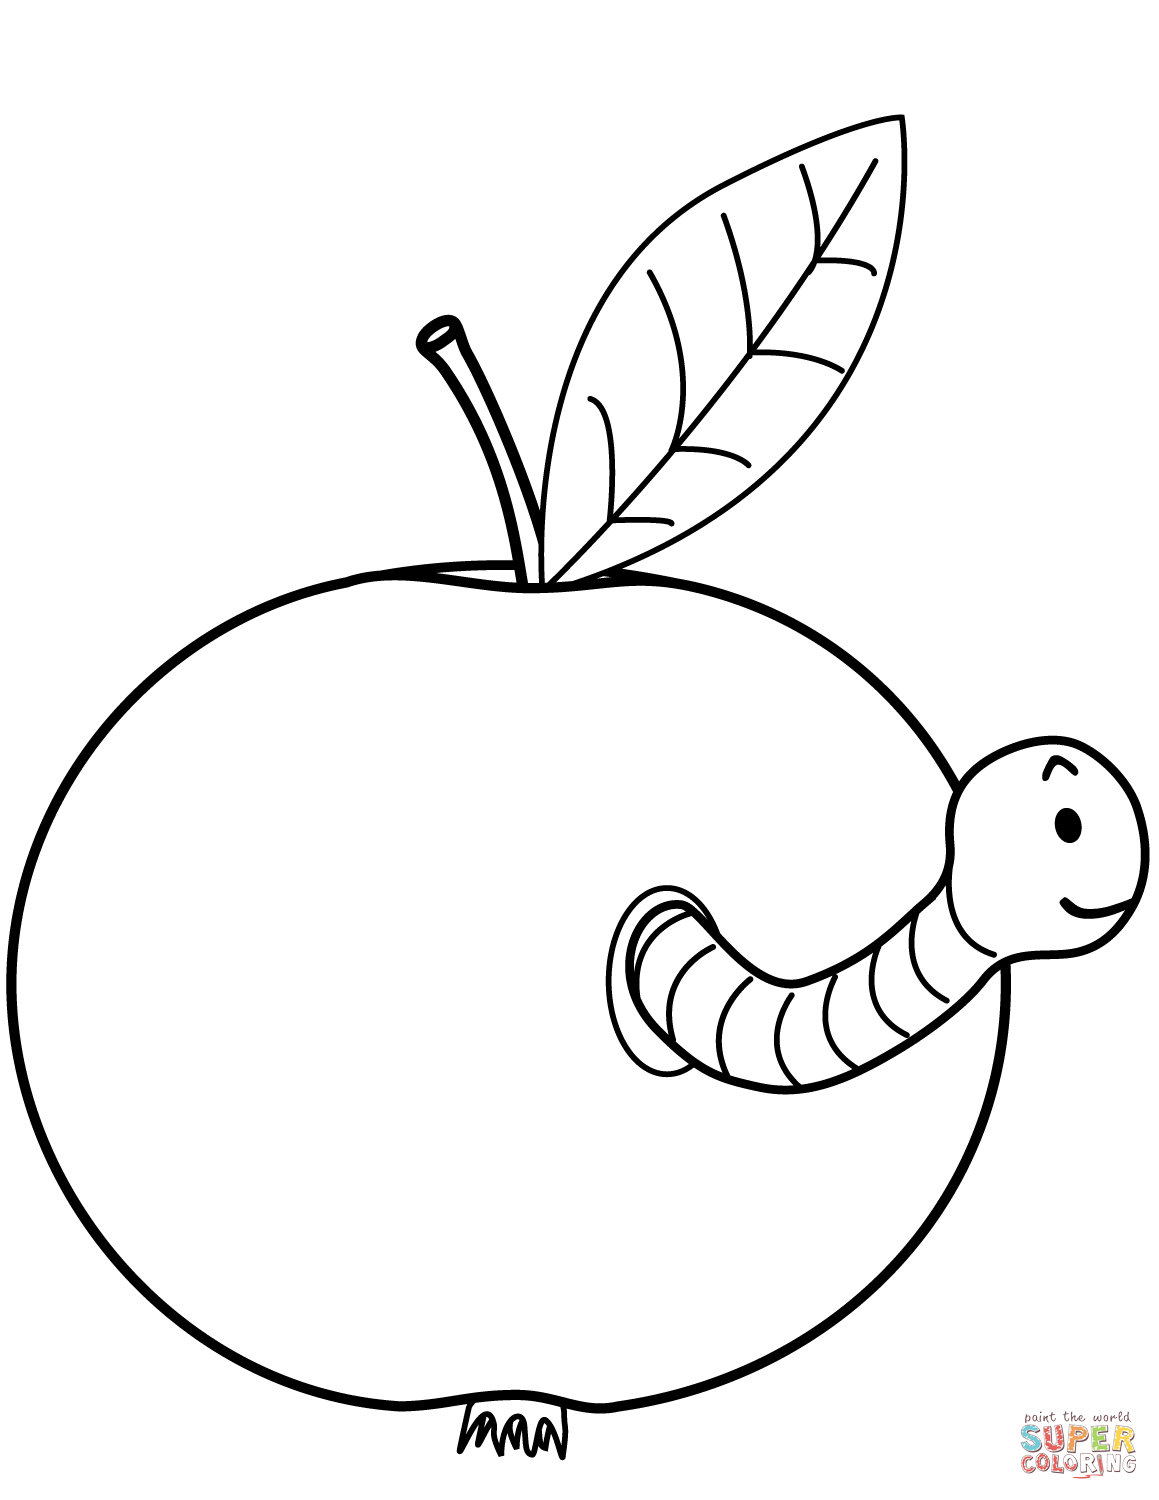 Worm Is Coming Out Of Apple Super Coloring Coloring Pages Owl Coloring Pages Free Printable Coloring Pages